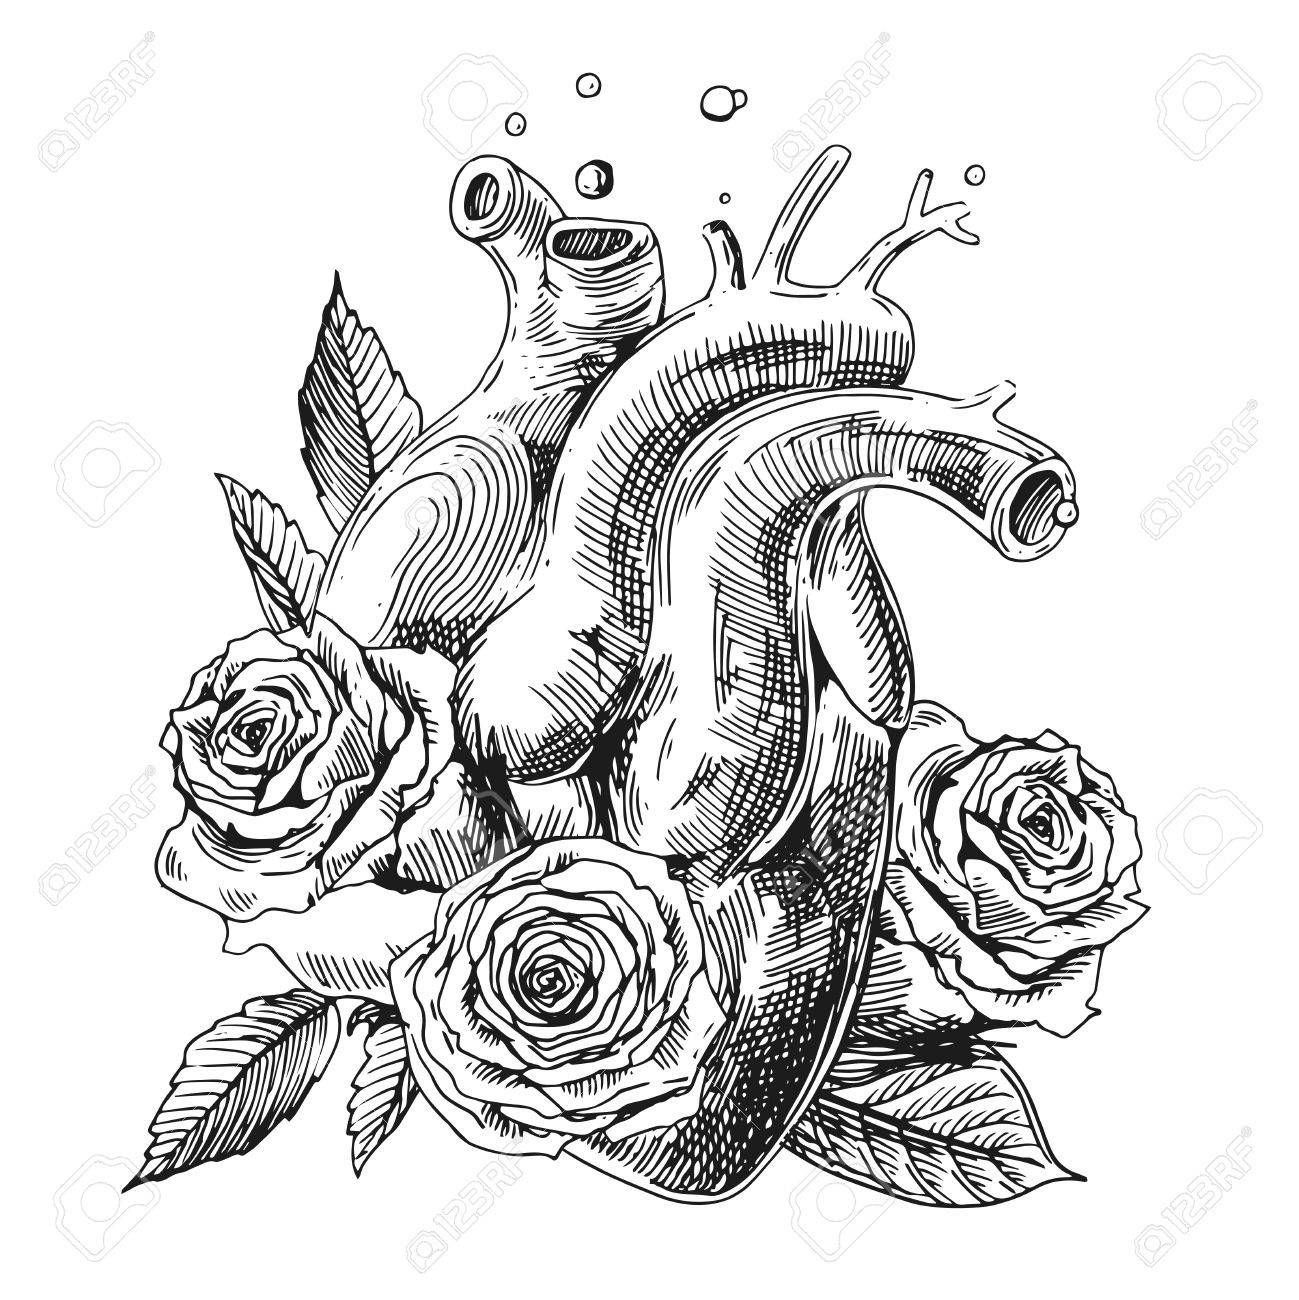 1299x1300 Illustration With Sketch Of Human Heart. Hand Drawn Vector